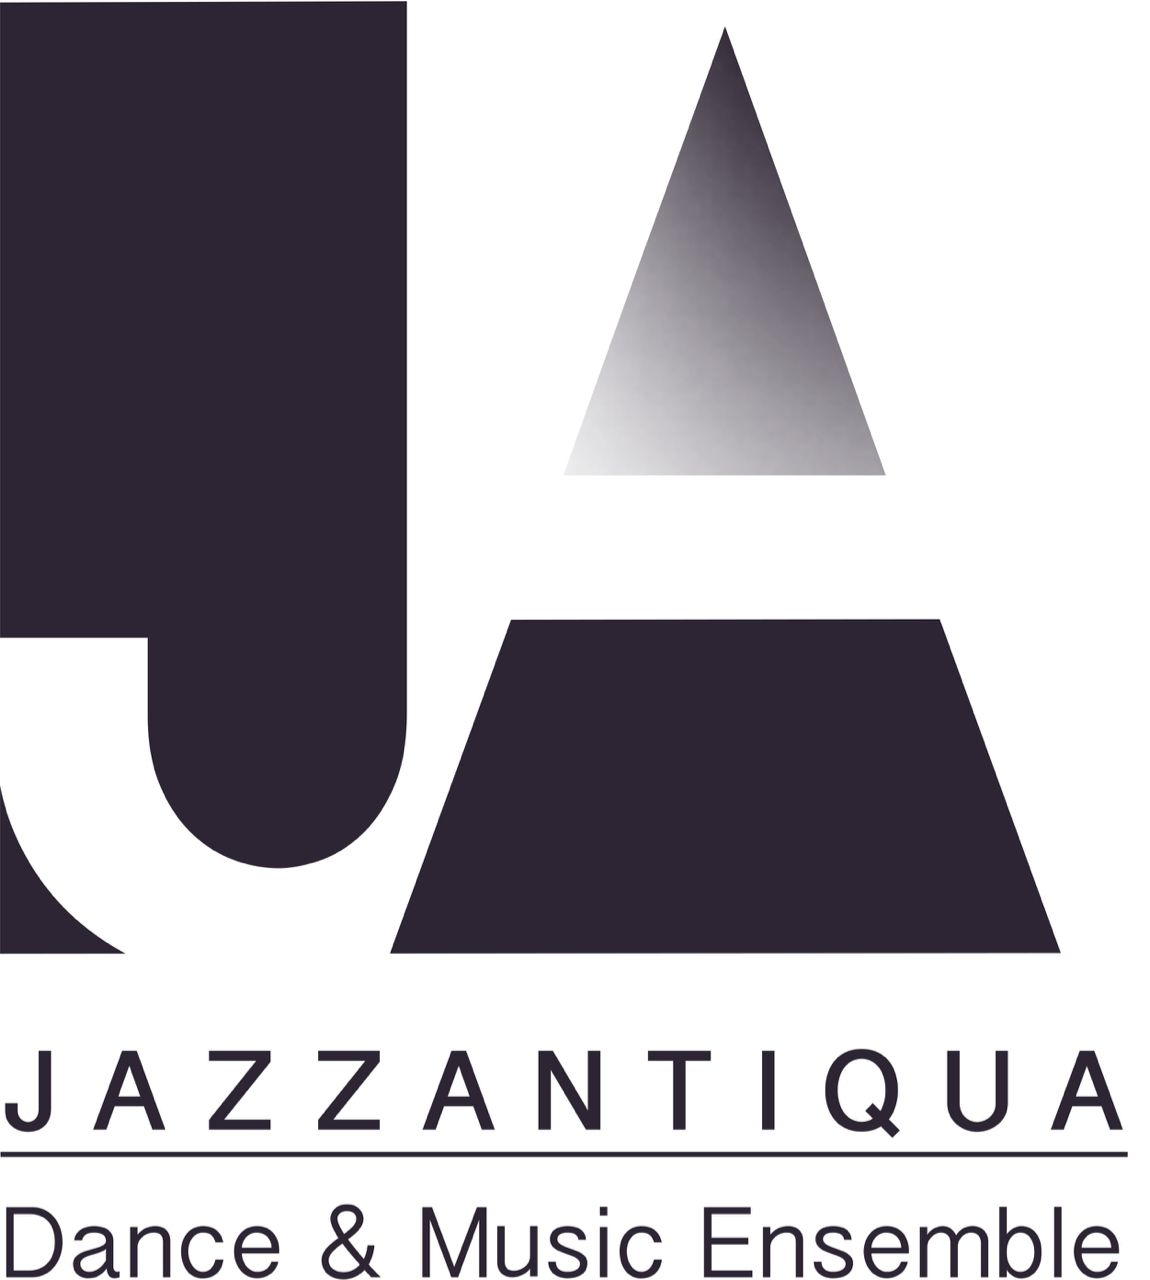 JazzAntiqua Dance & Music Ensemble Logo